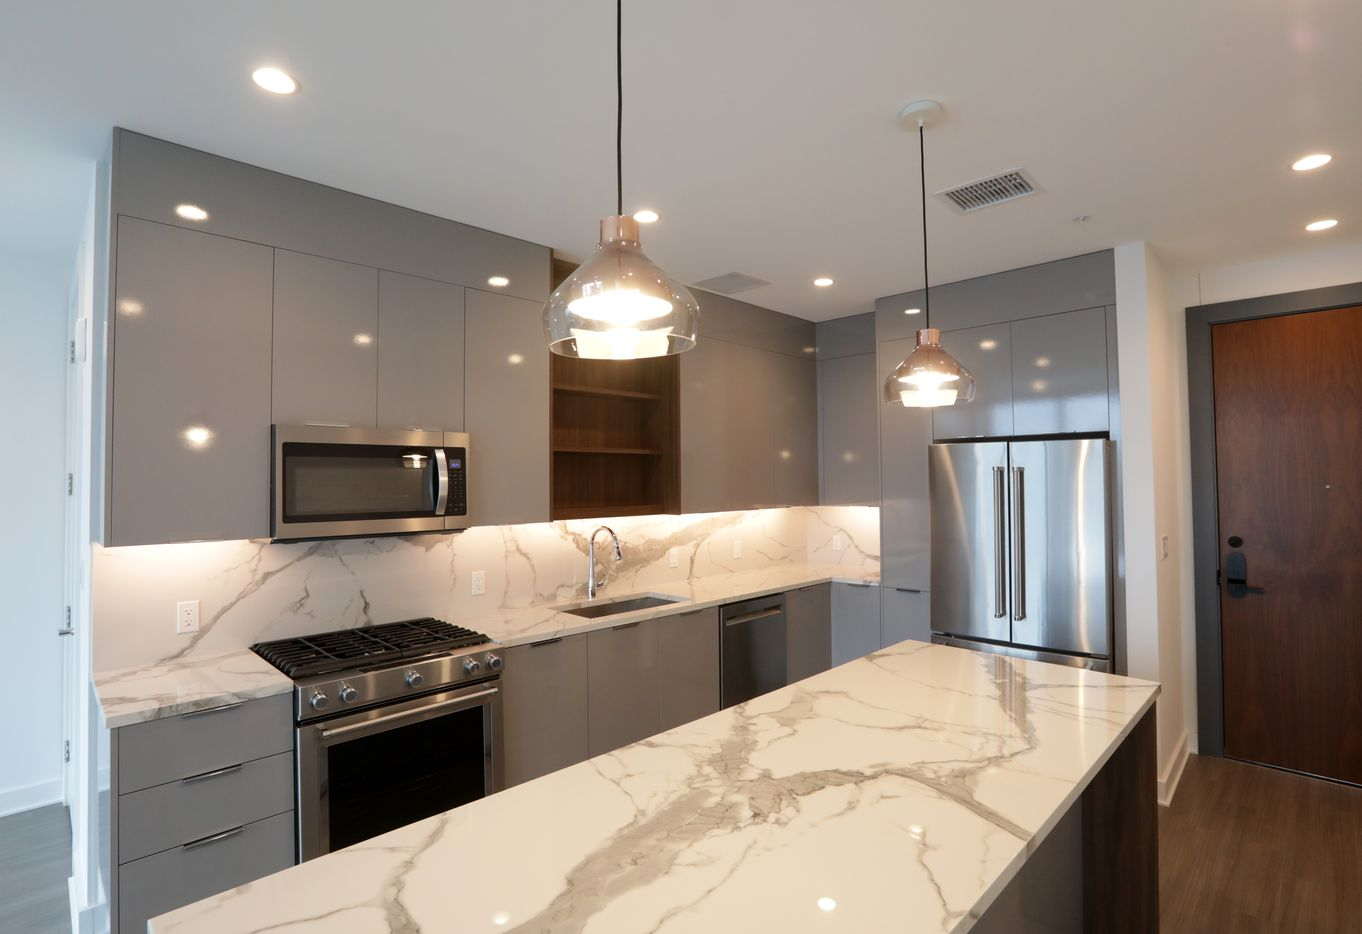 A finished kitchen area at Amli Fountain Place.